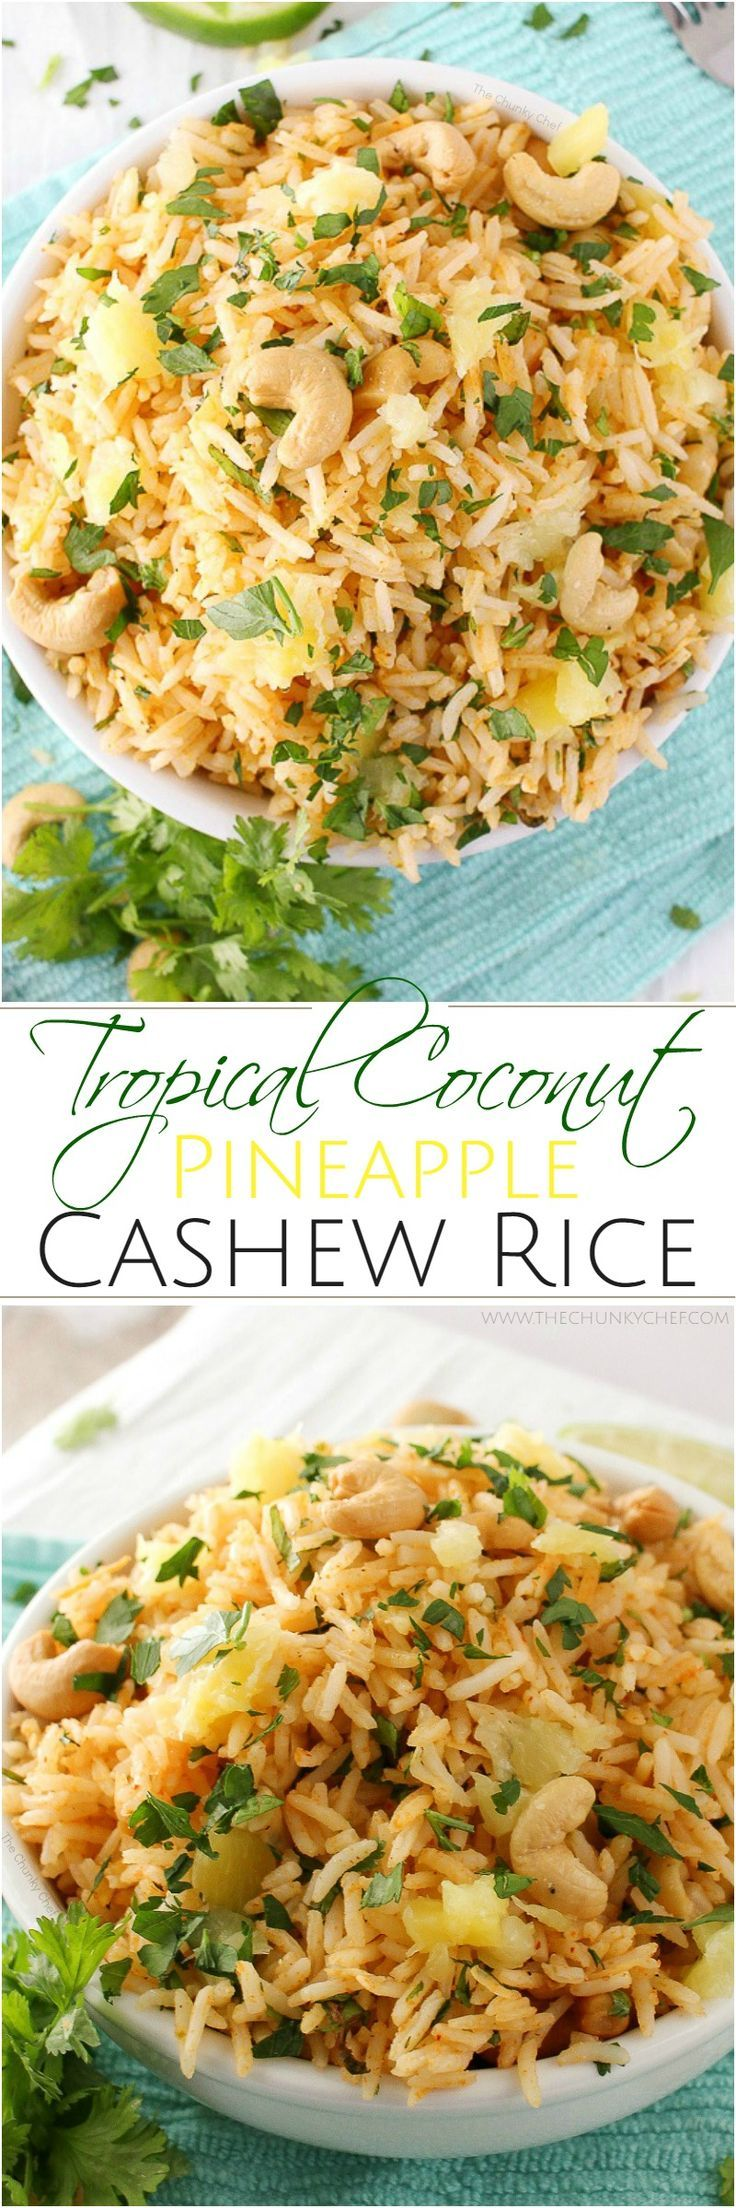 A fantastic rice dish that has all the great flavors of the tropics... sweet coconut, red curry, fresh pineapple and savory roasted cashews!